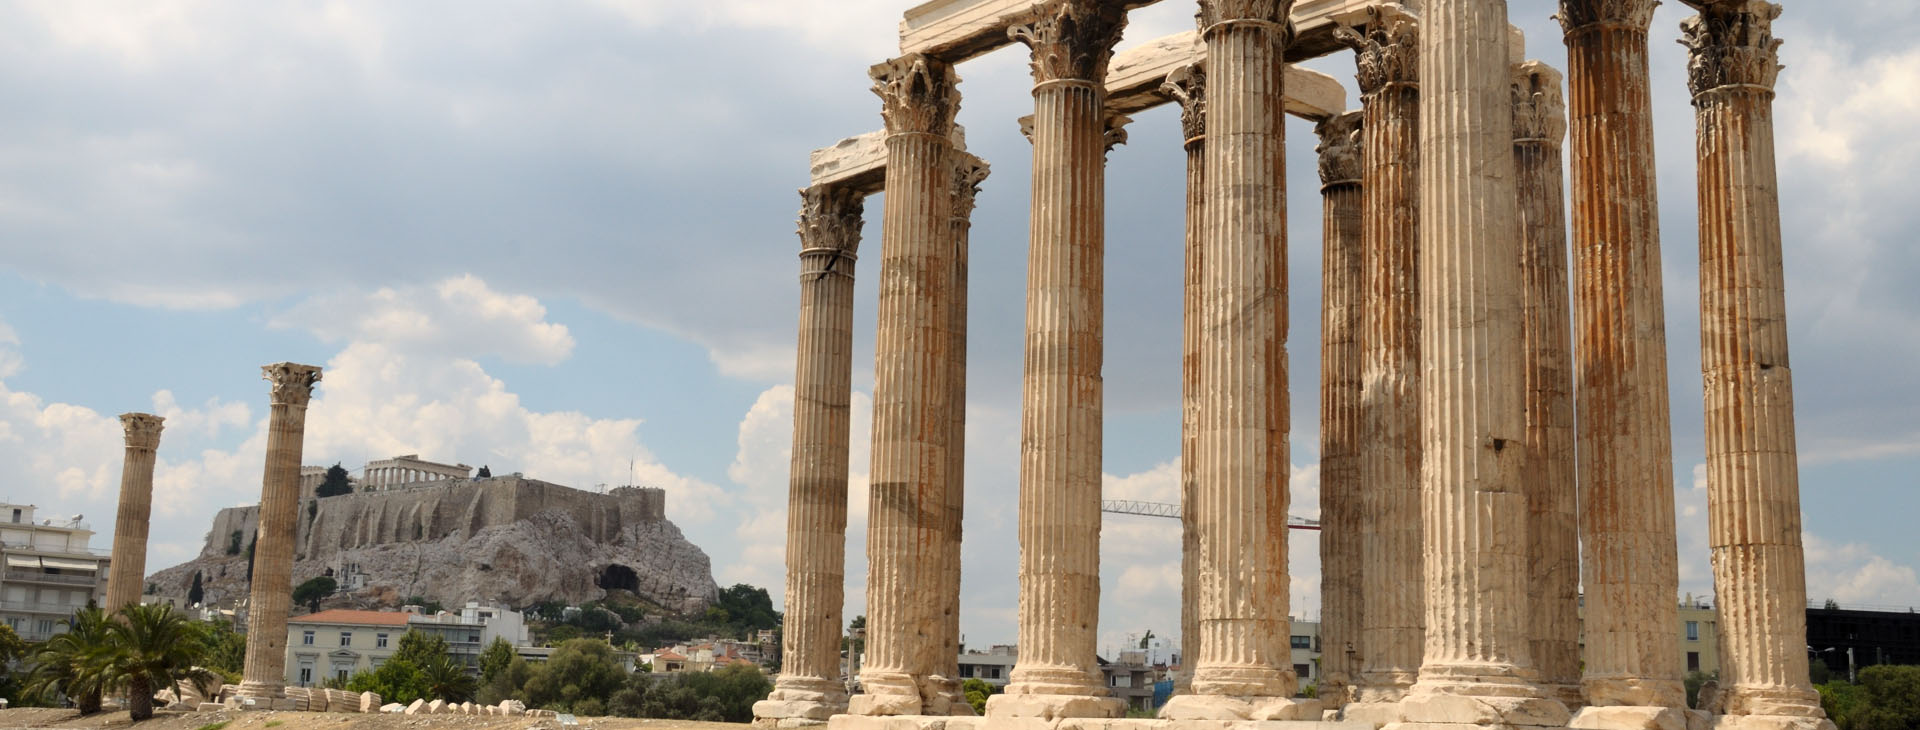 Temple of Olympian Zeus and Acropolis, Athens